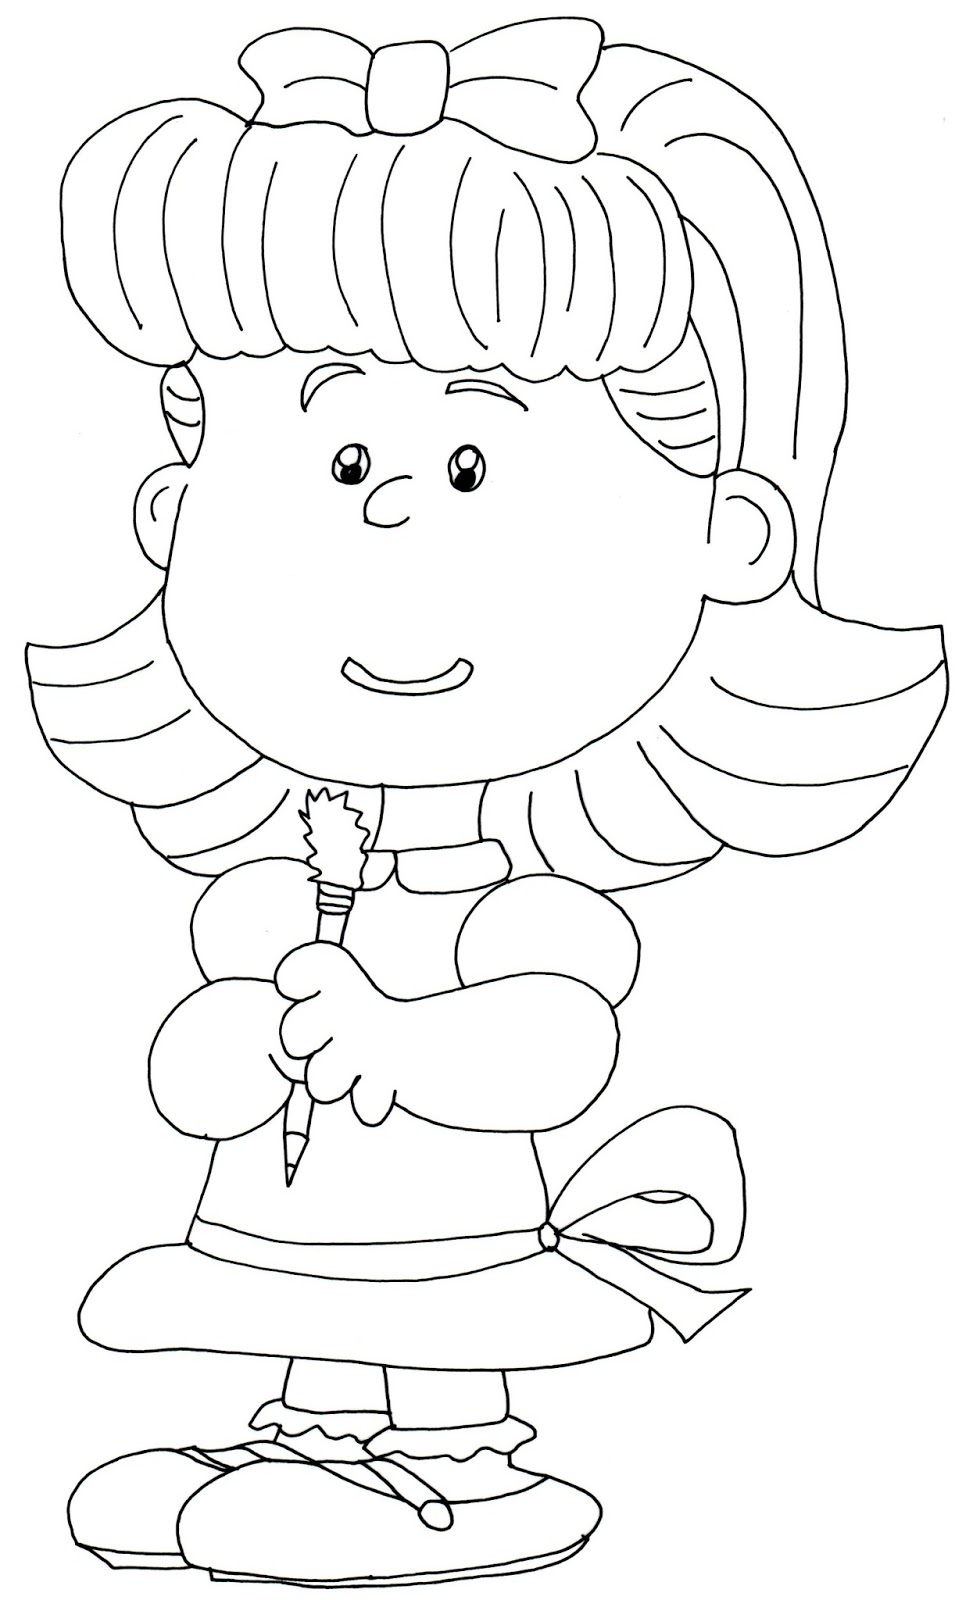 free charlie brown snoopy and peanuts coloring pages january 2016